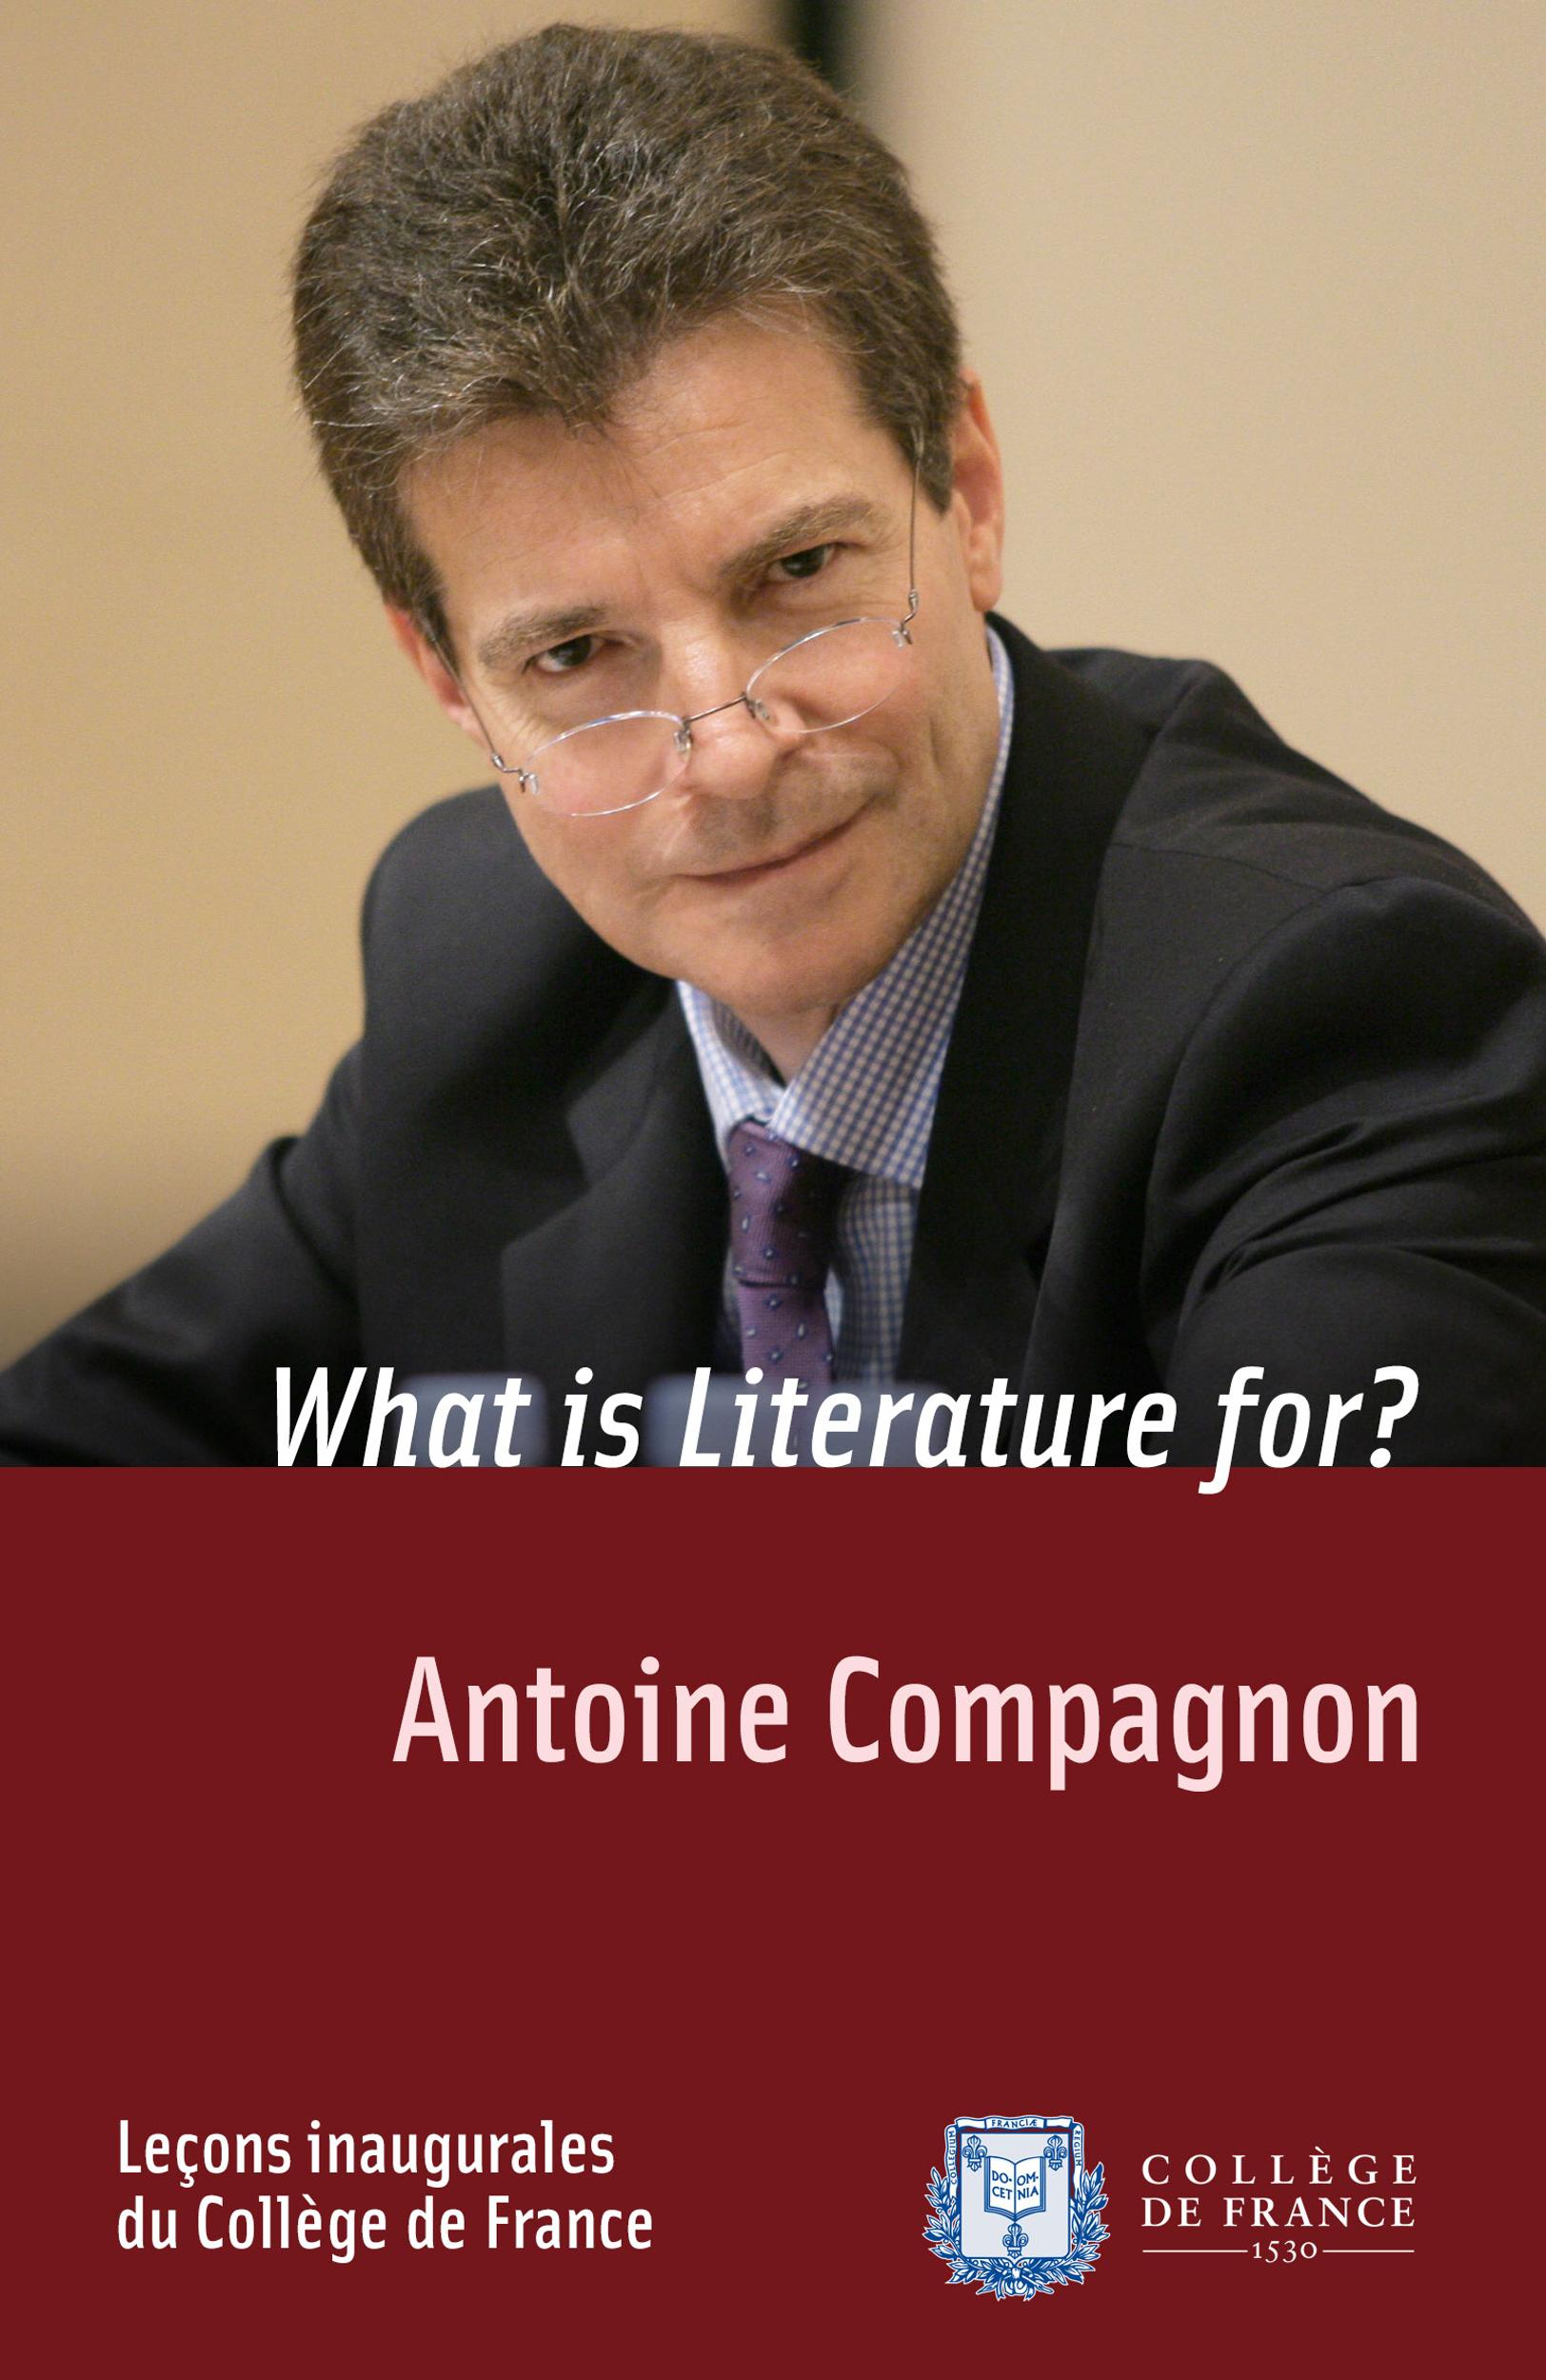 What is Literature for?, INAUGURAL LECTURE DELIVERED ON THURSDAY 30 NOVEMBER 2006